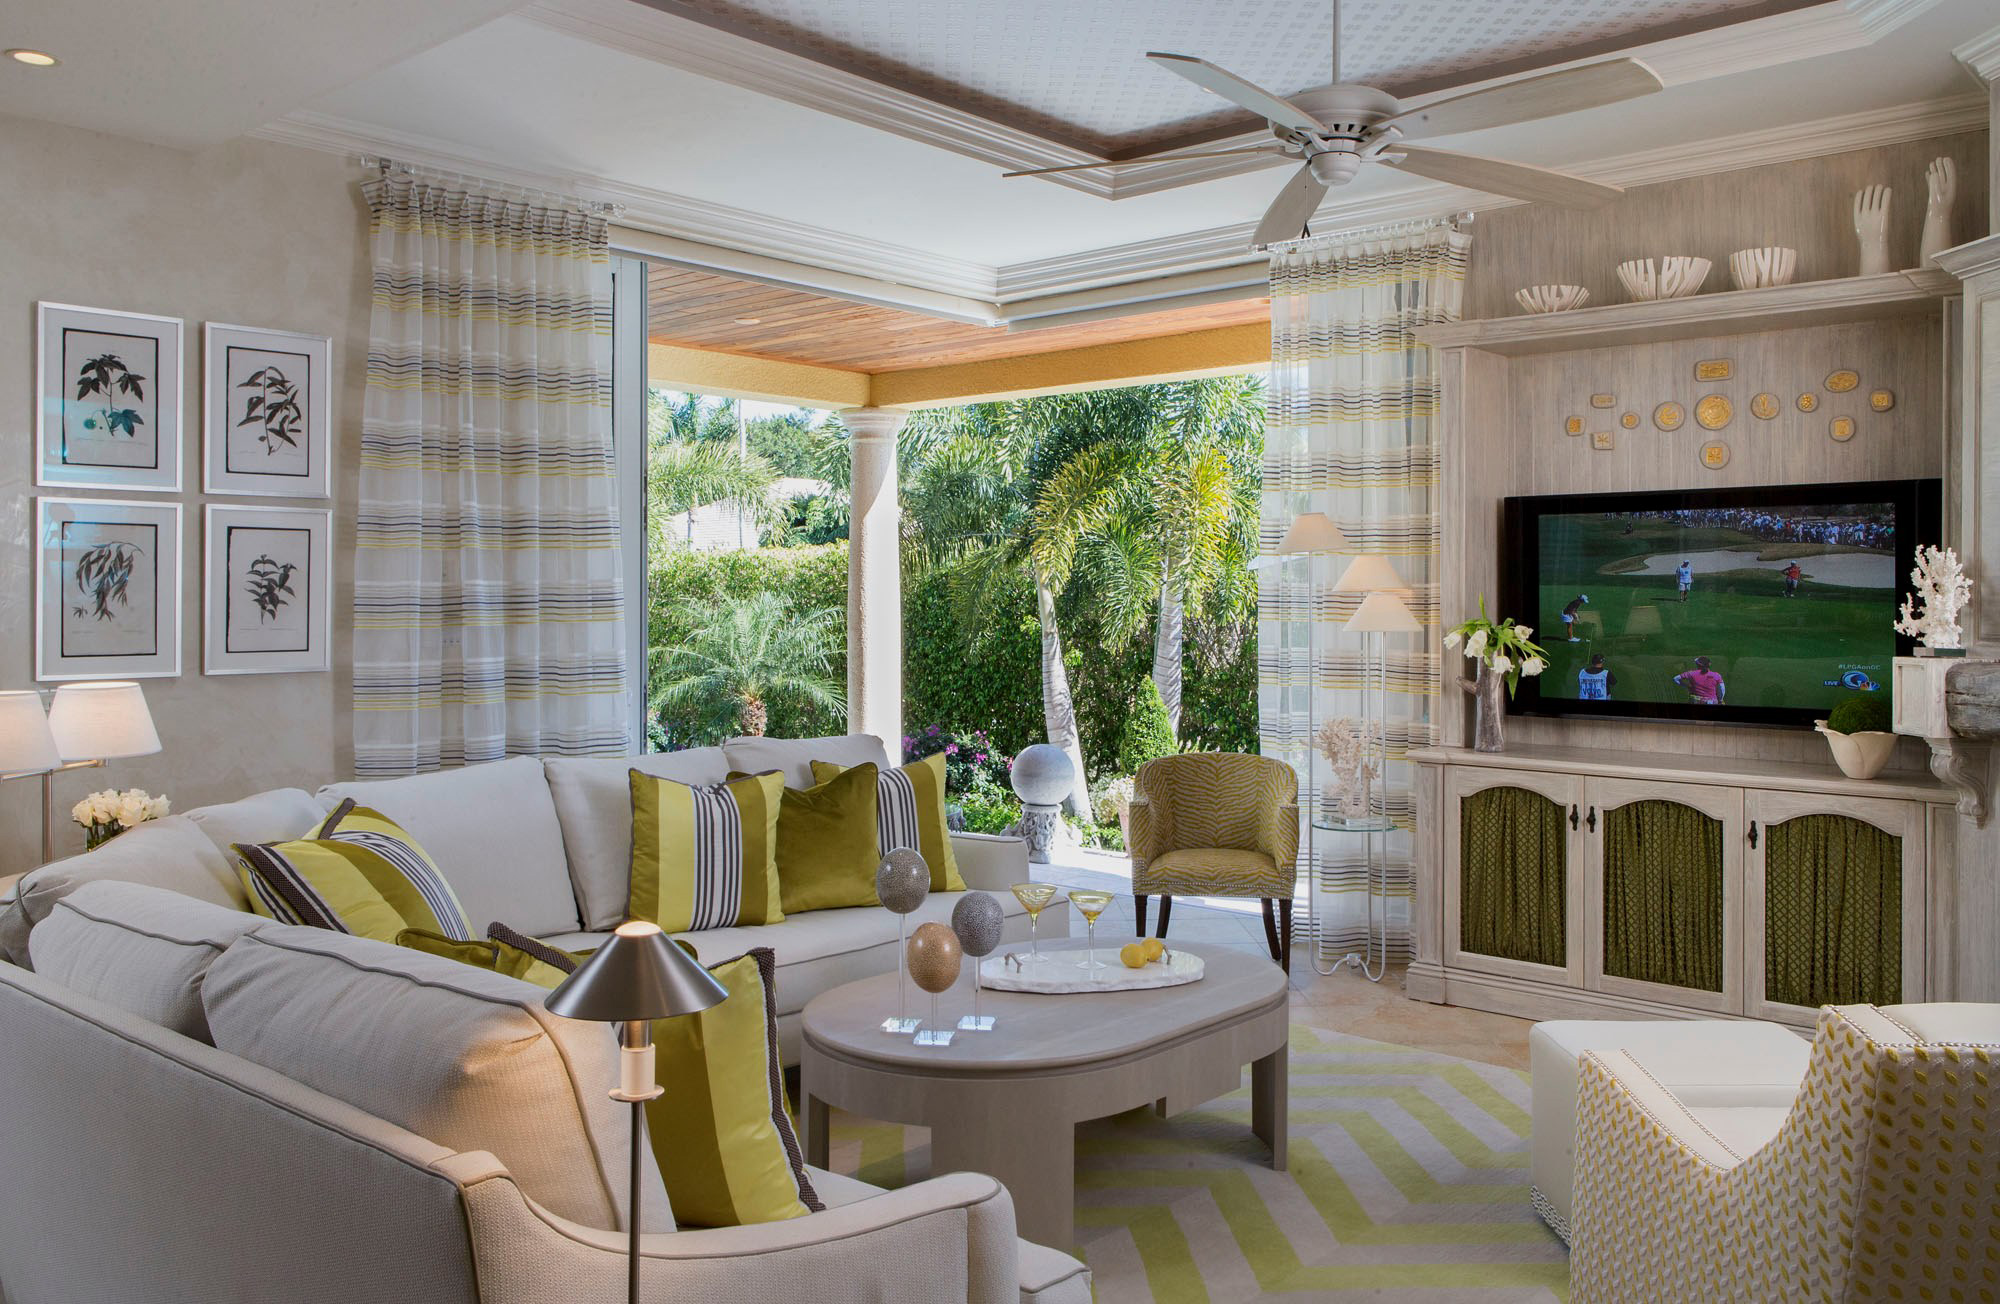 Interior Design Gallery Malibu West Interiors Naples Florida